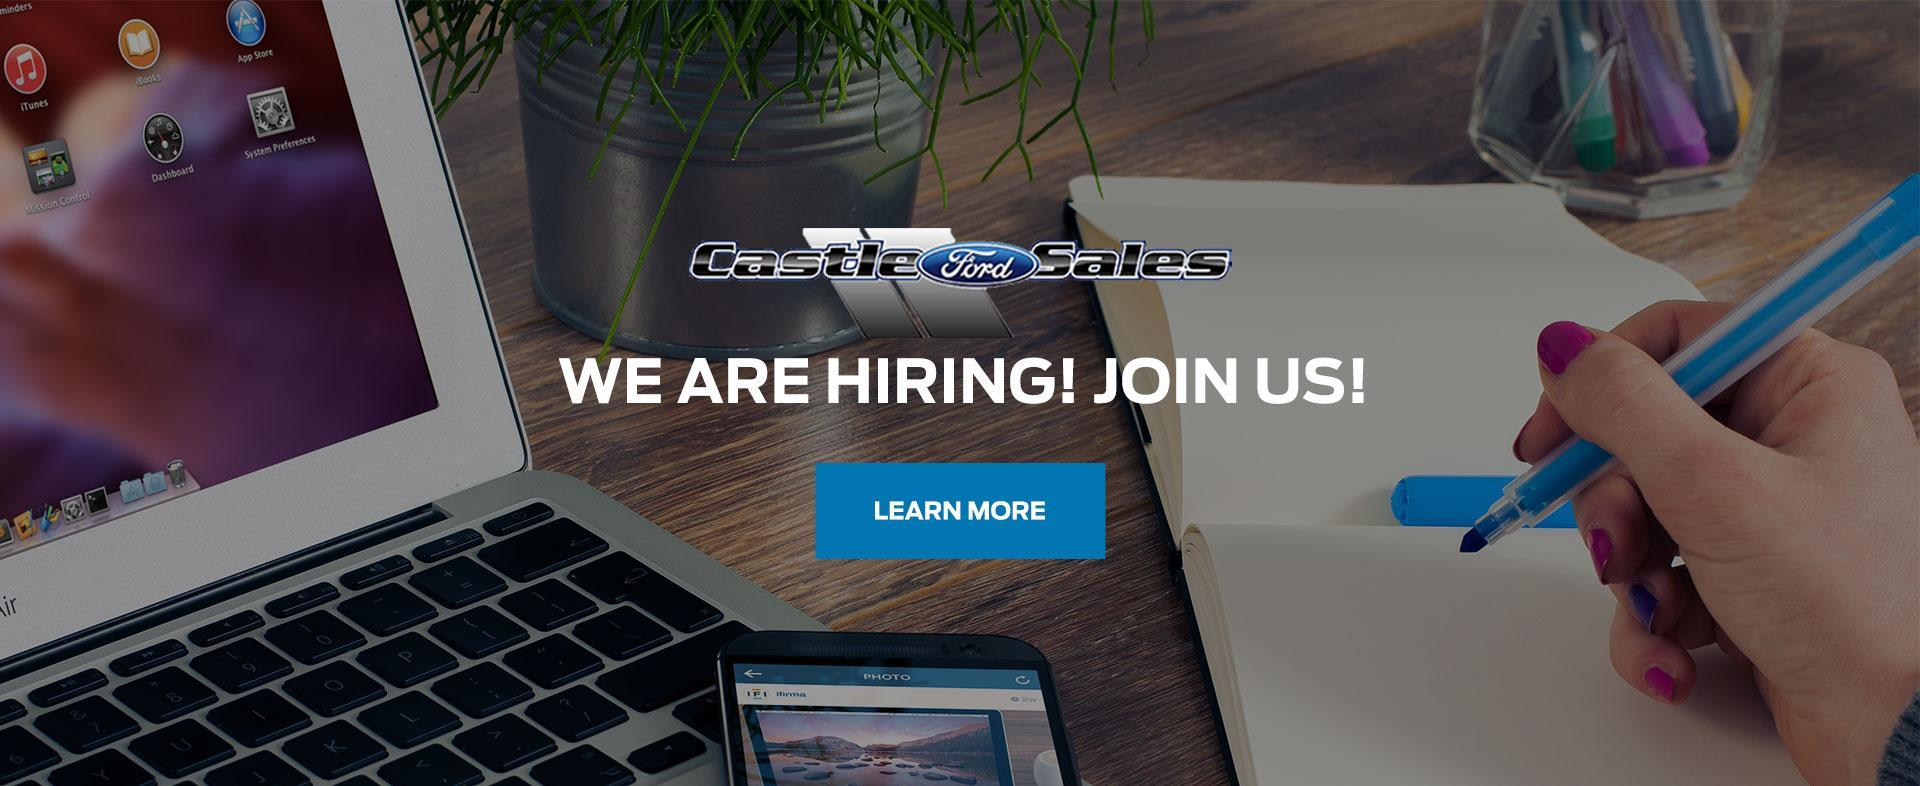 Join Our Team at Castle Ford Sales